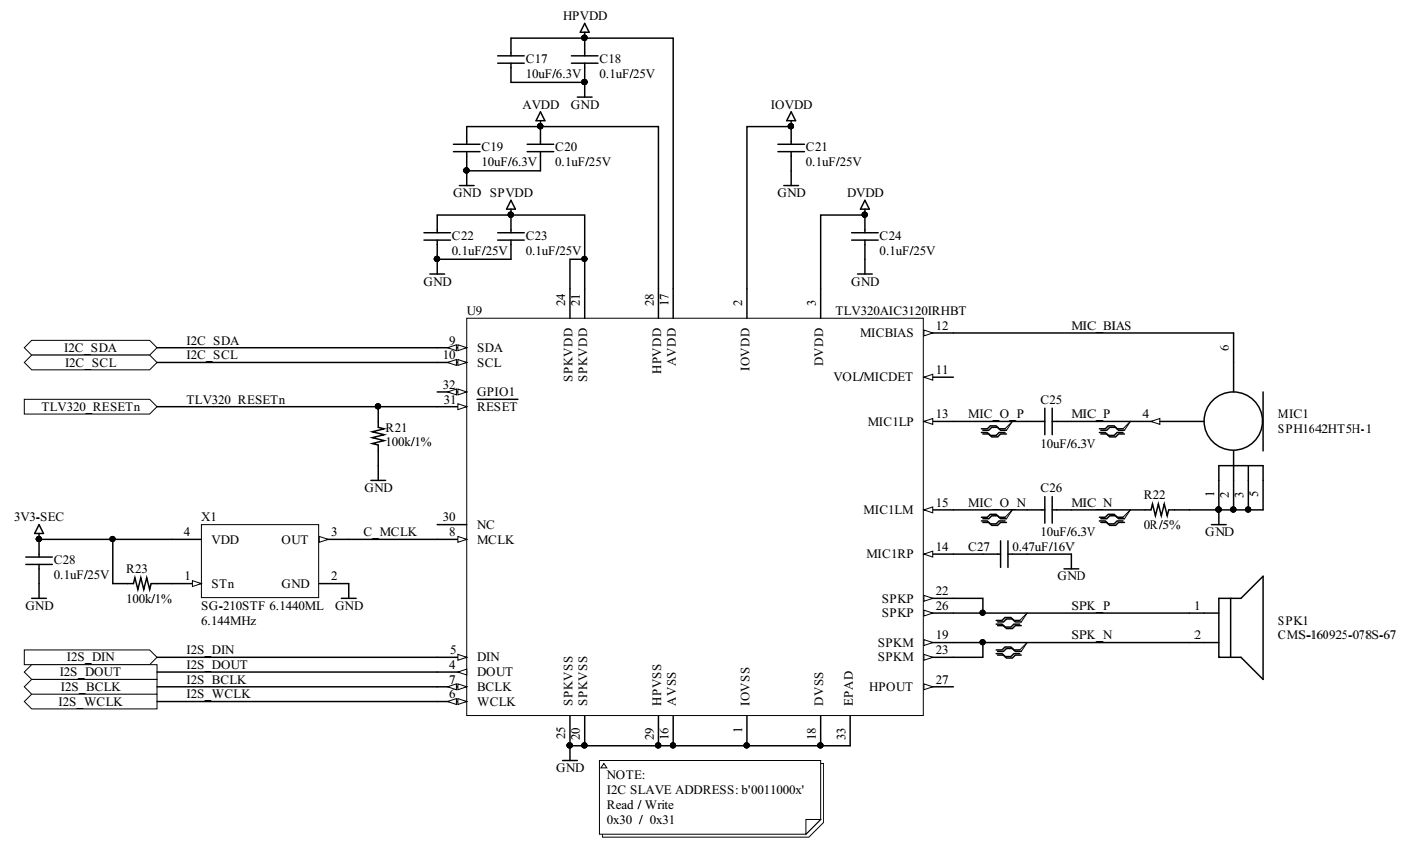 Resolved] TLV320AIC3120: Microphone interconnection based on the